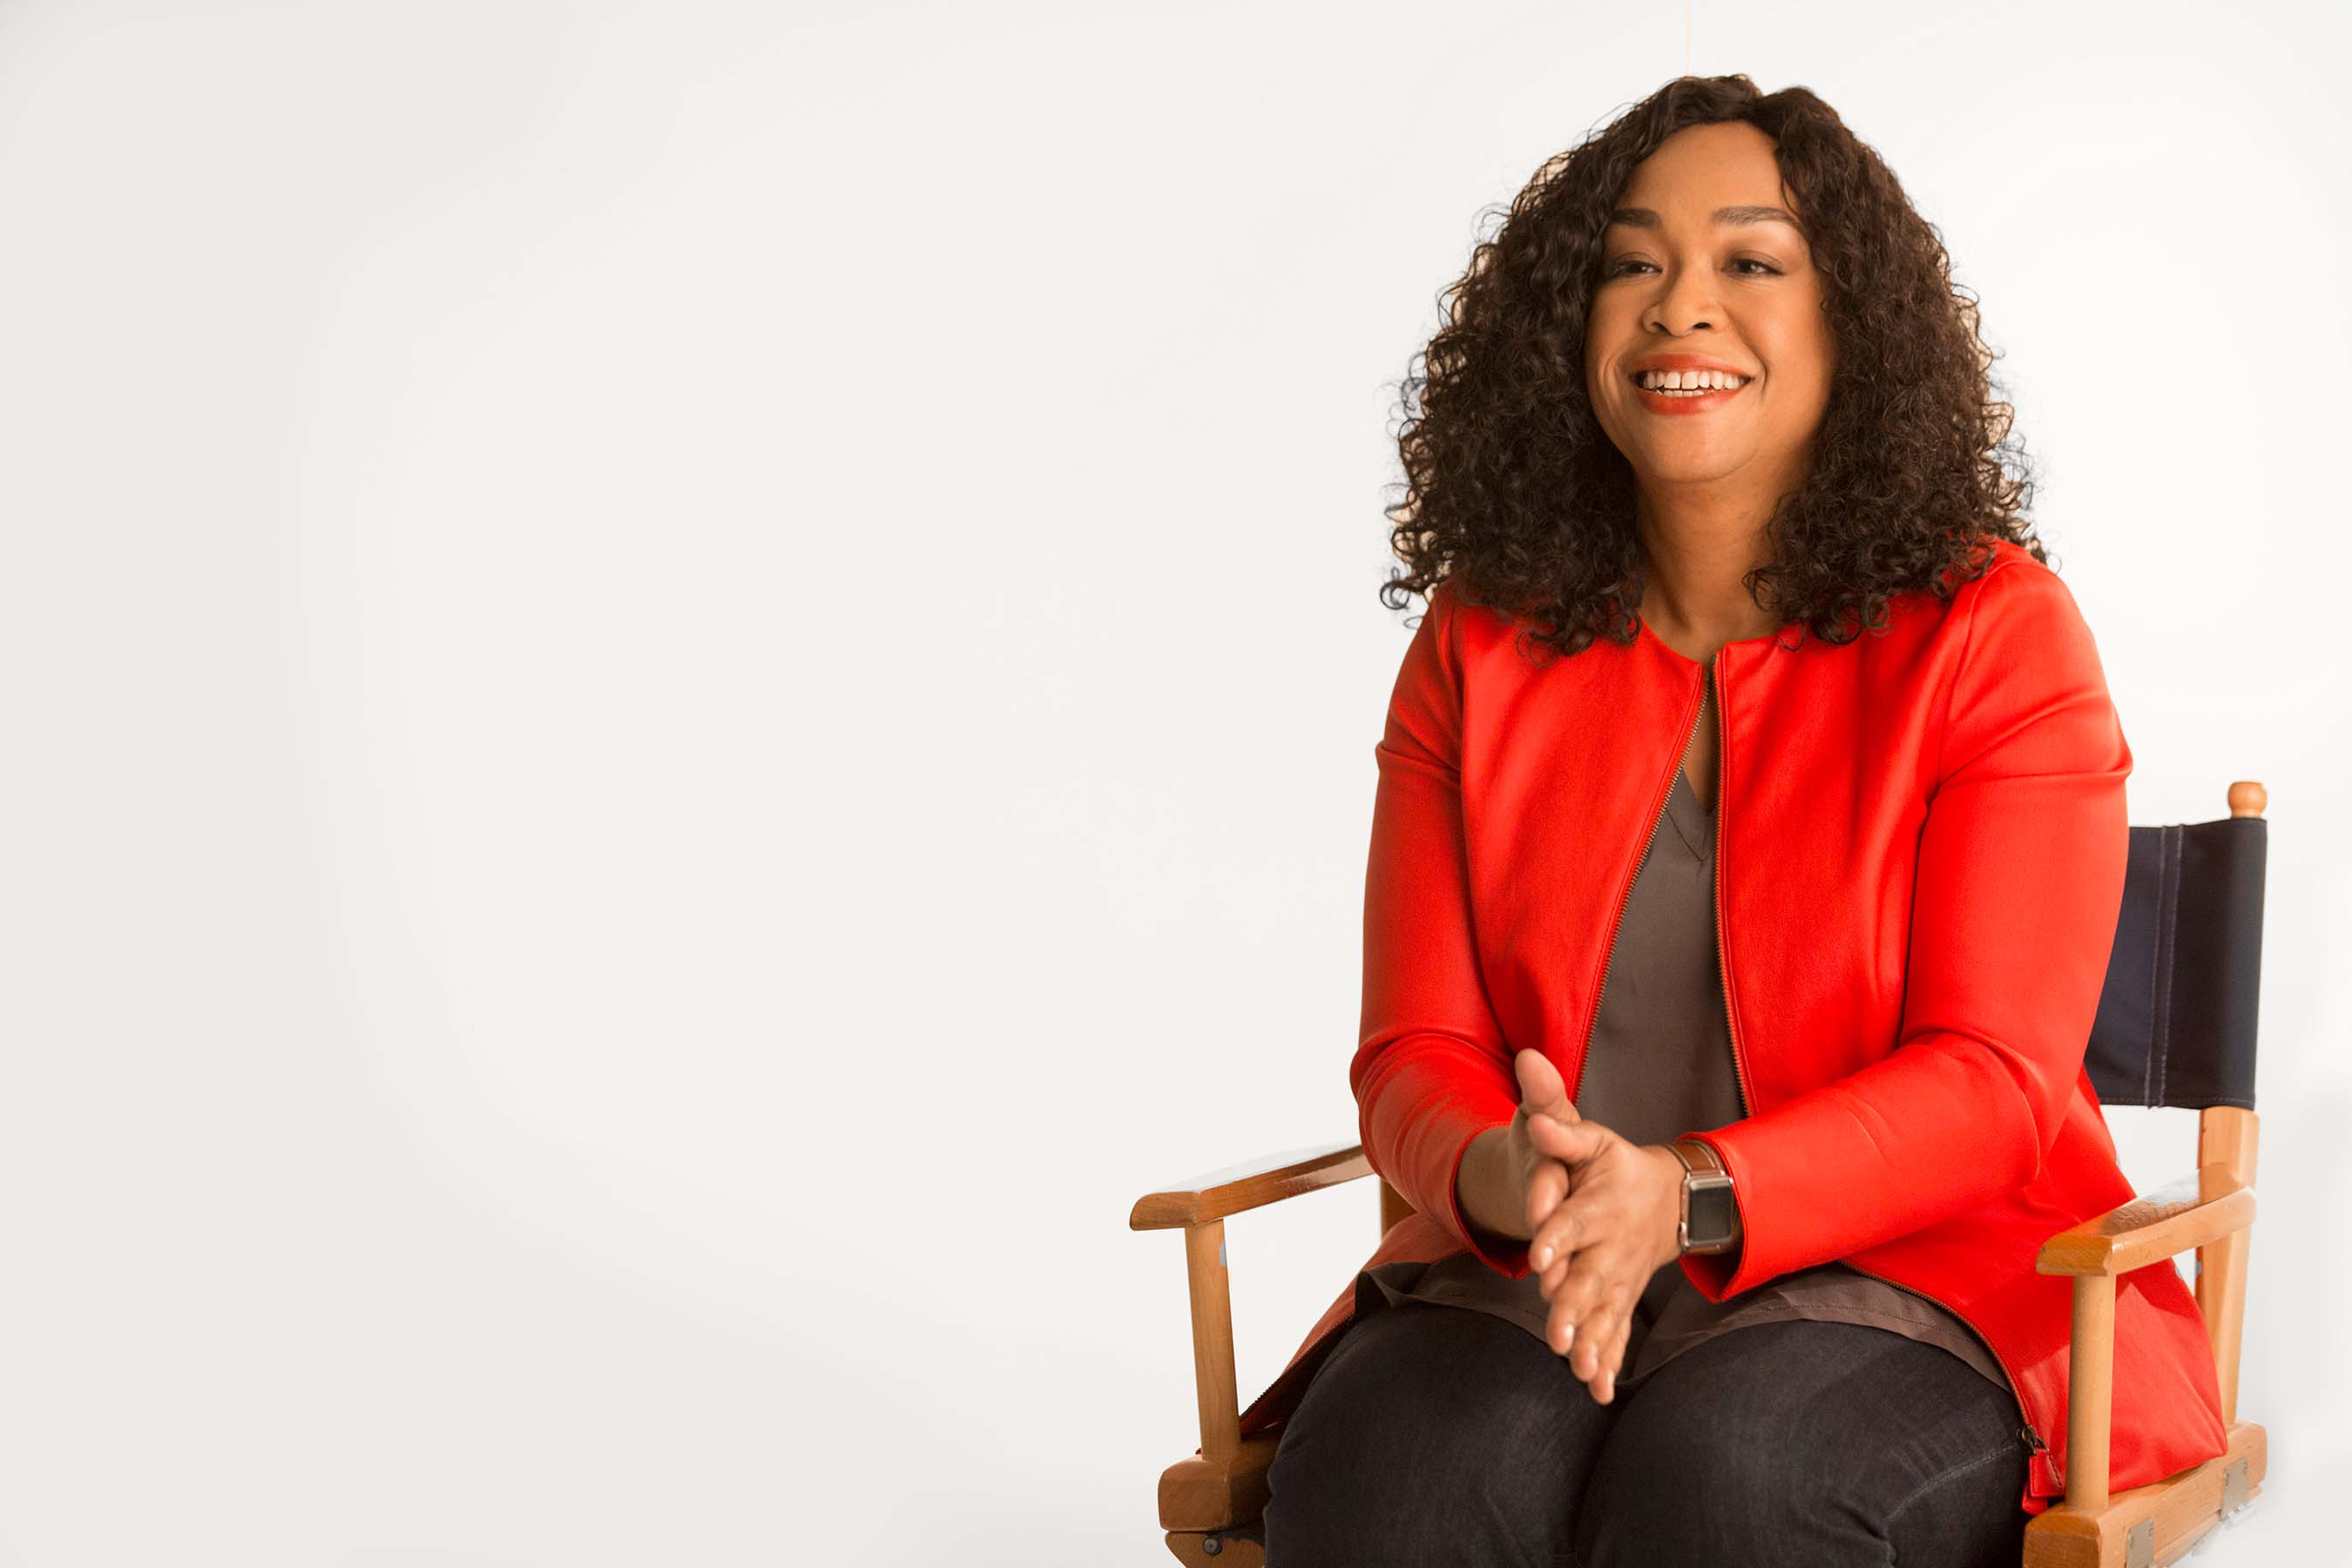 Shonda Rhimes has been a pioneer in celebrating diverse and inclusive beauty on screen and now she's putting the power directly into the hands of real women and girls with Dove Real Beauty Productions